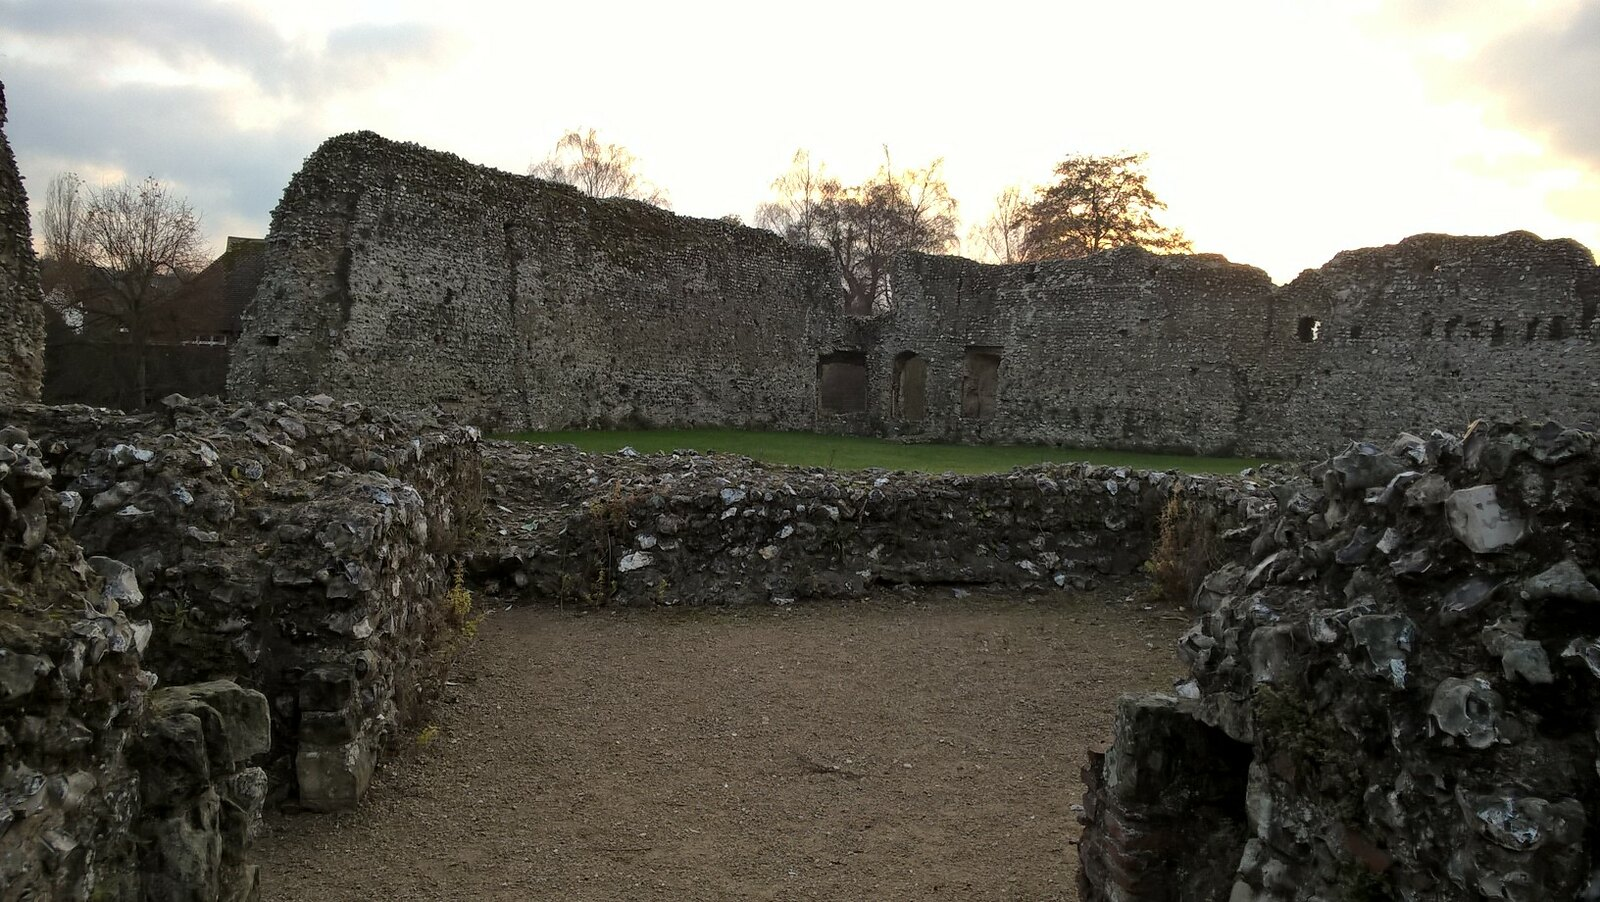 Ruins Eynsford Castle, owned by the Eynsford family until 1312 when they abandoned it following vandalism after an inheritance dispute.